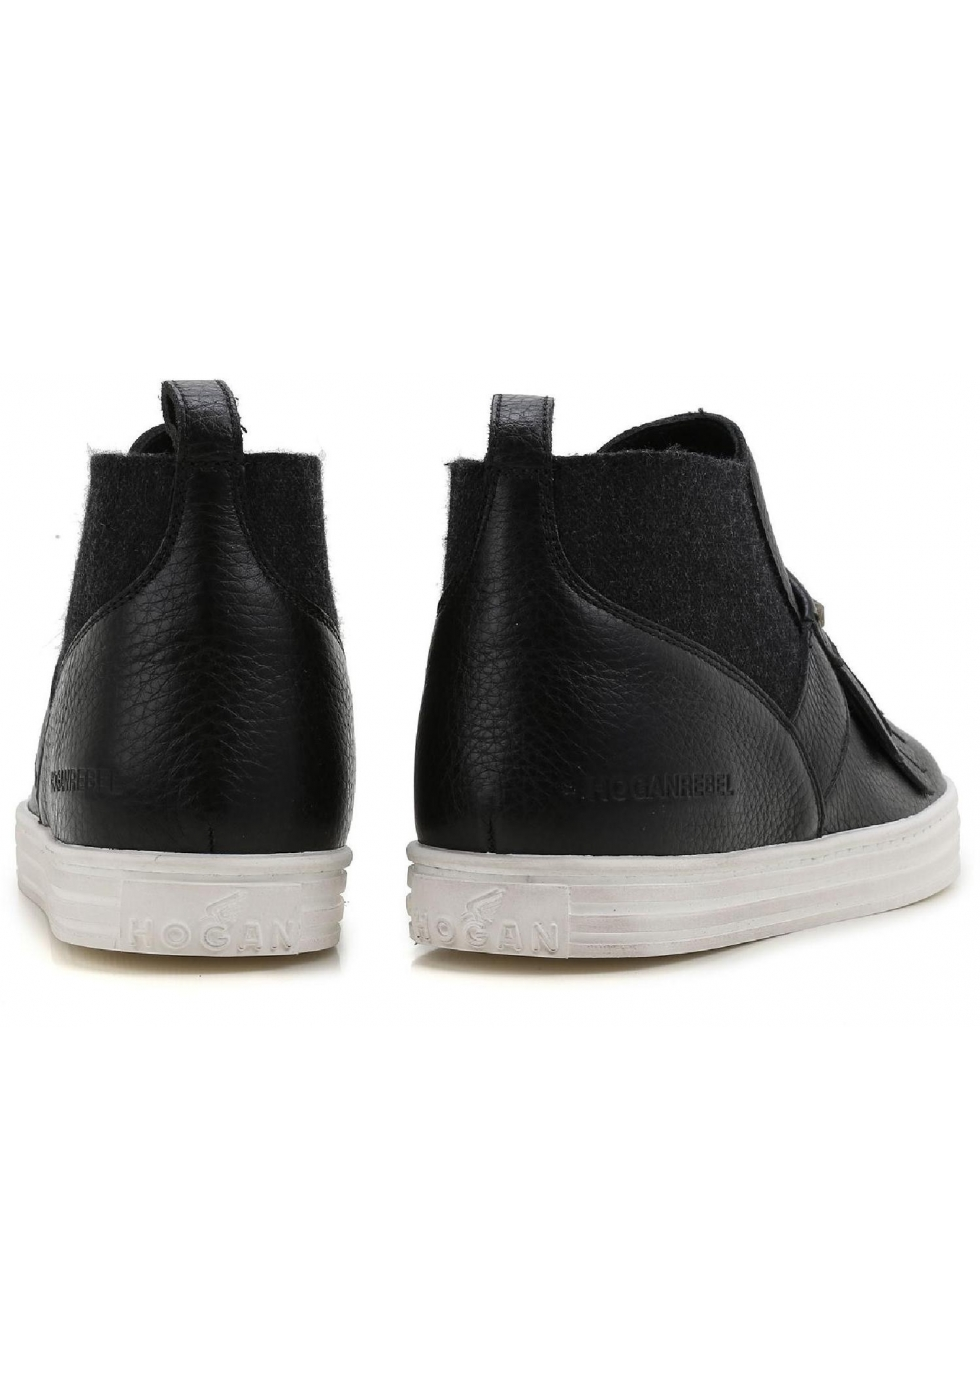 1626b00add Hogan women's slip-ons ankle boots in black leather - Italian Boutique